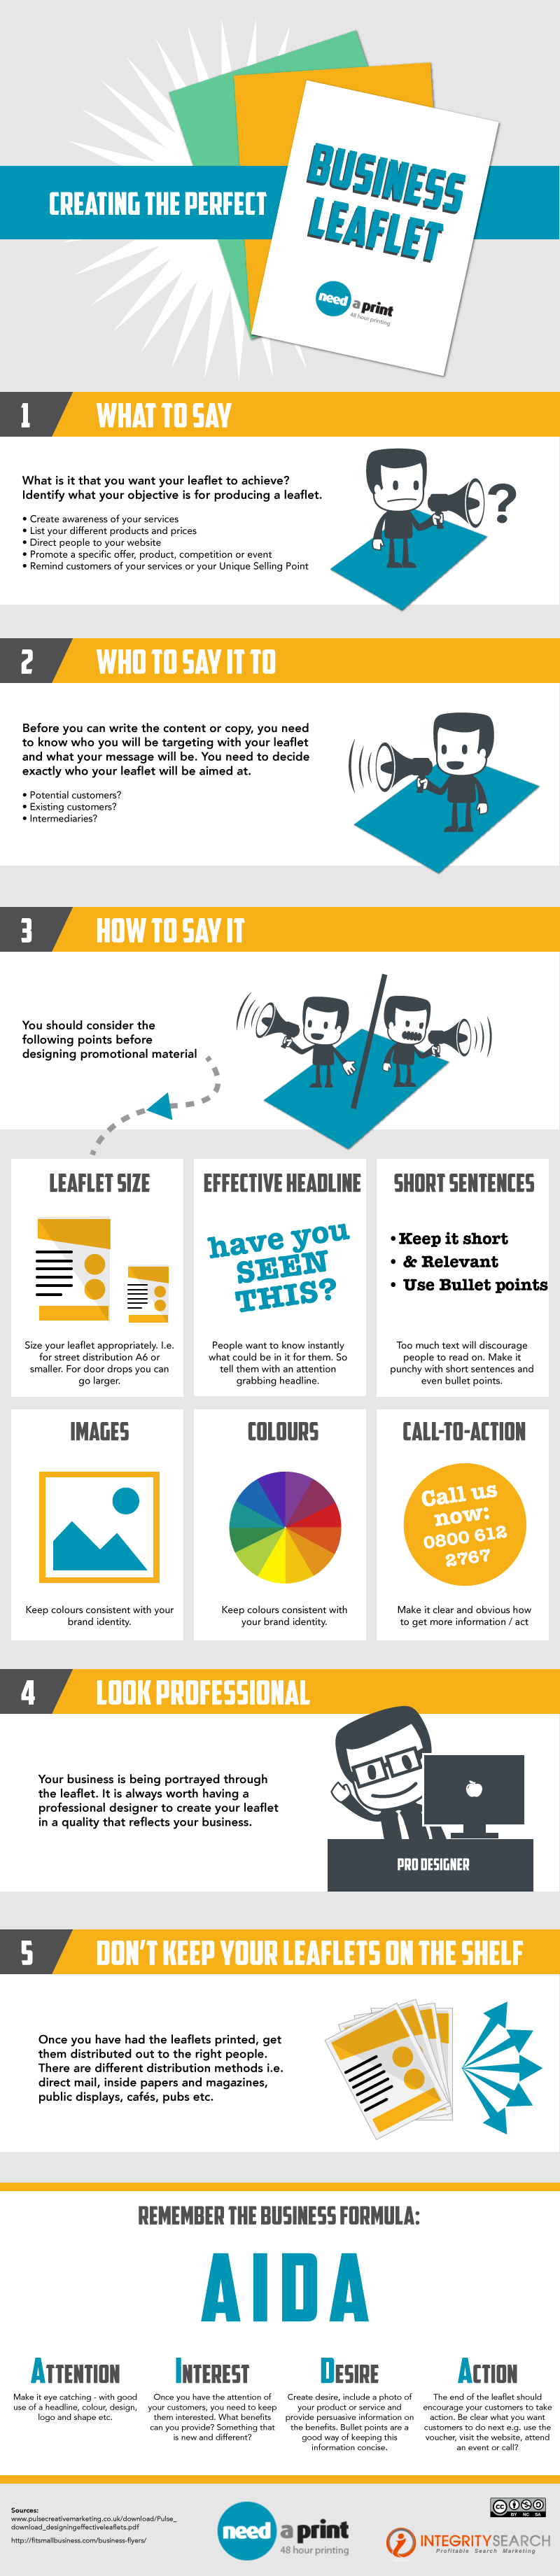 Infographic: How To Create The Perfect Business Leaflet